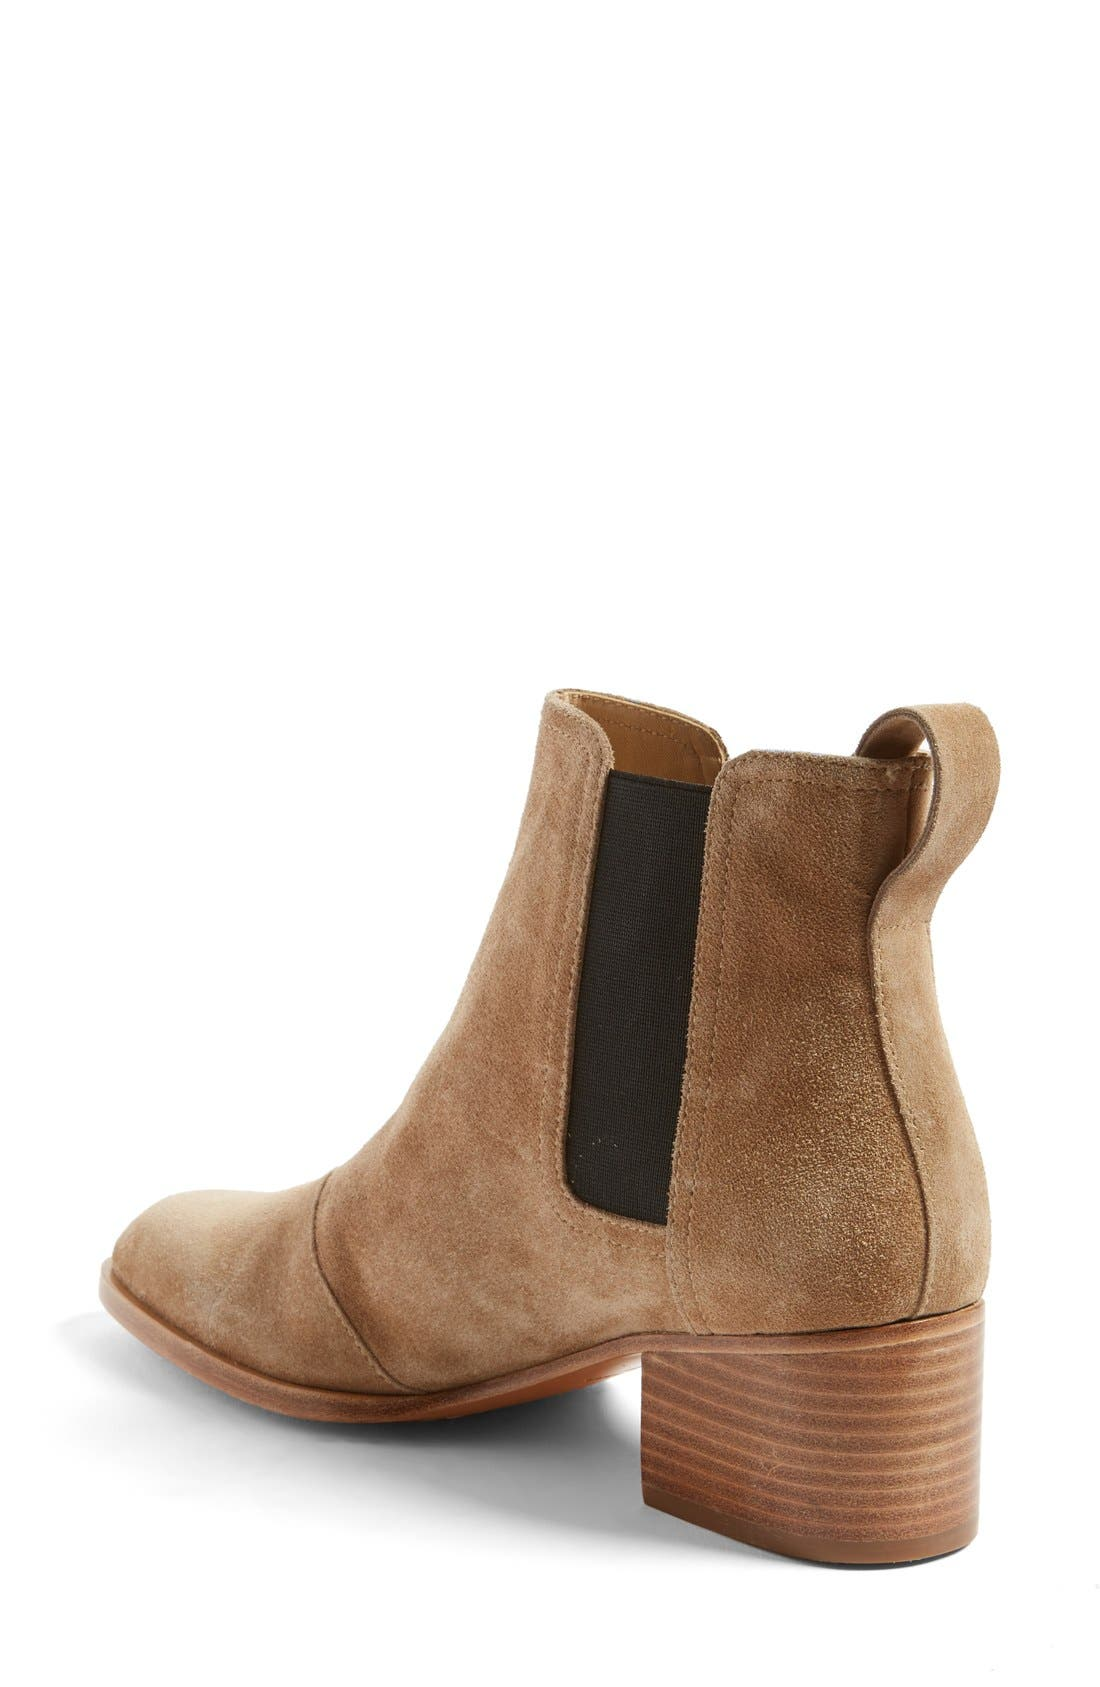 RAG & BONE, 'Walker' Bootie, Alternate thumbnail 4, color, CAMEL SUEDE